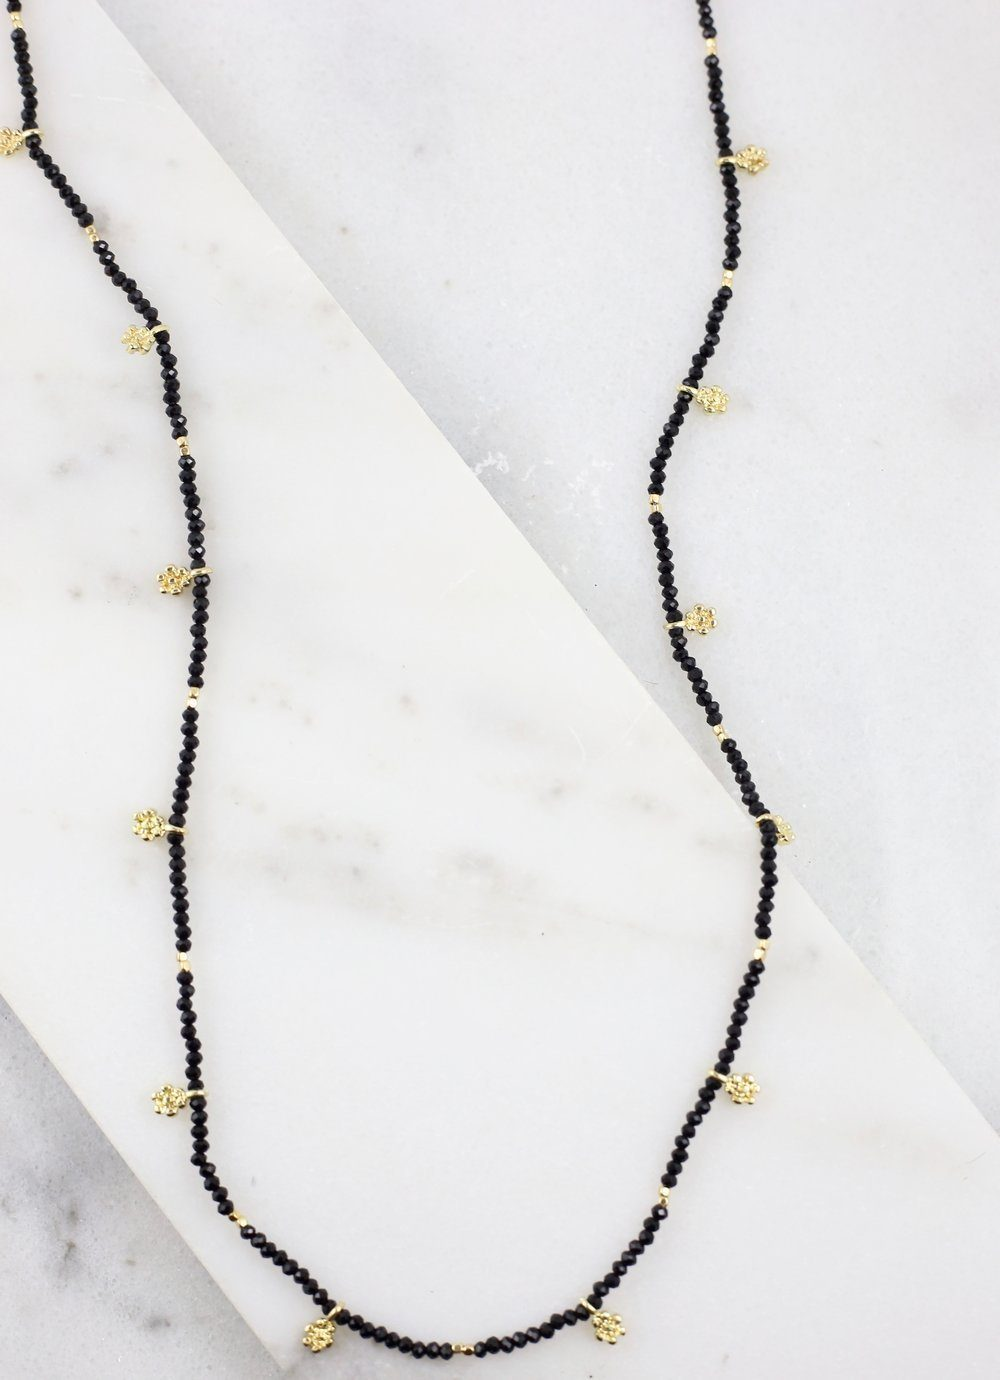 Thorne Black Long Beaded Necklace With Gold Charms - Caroline Hill